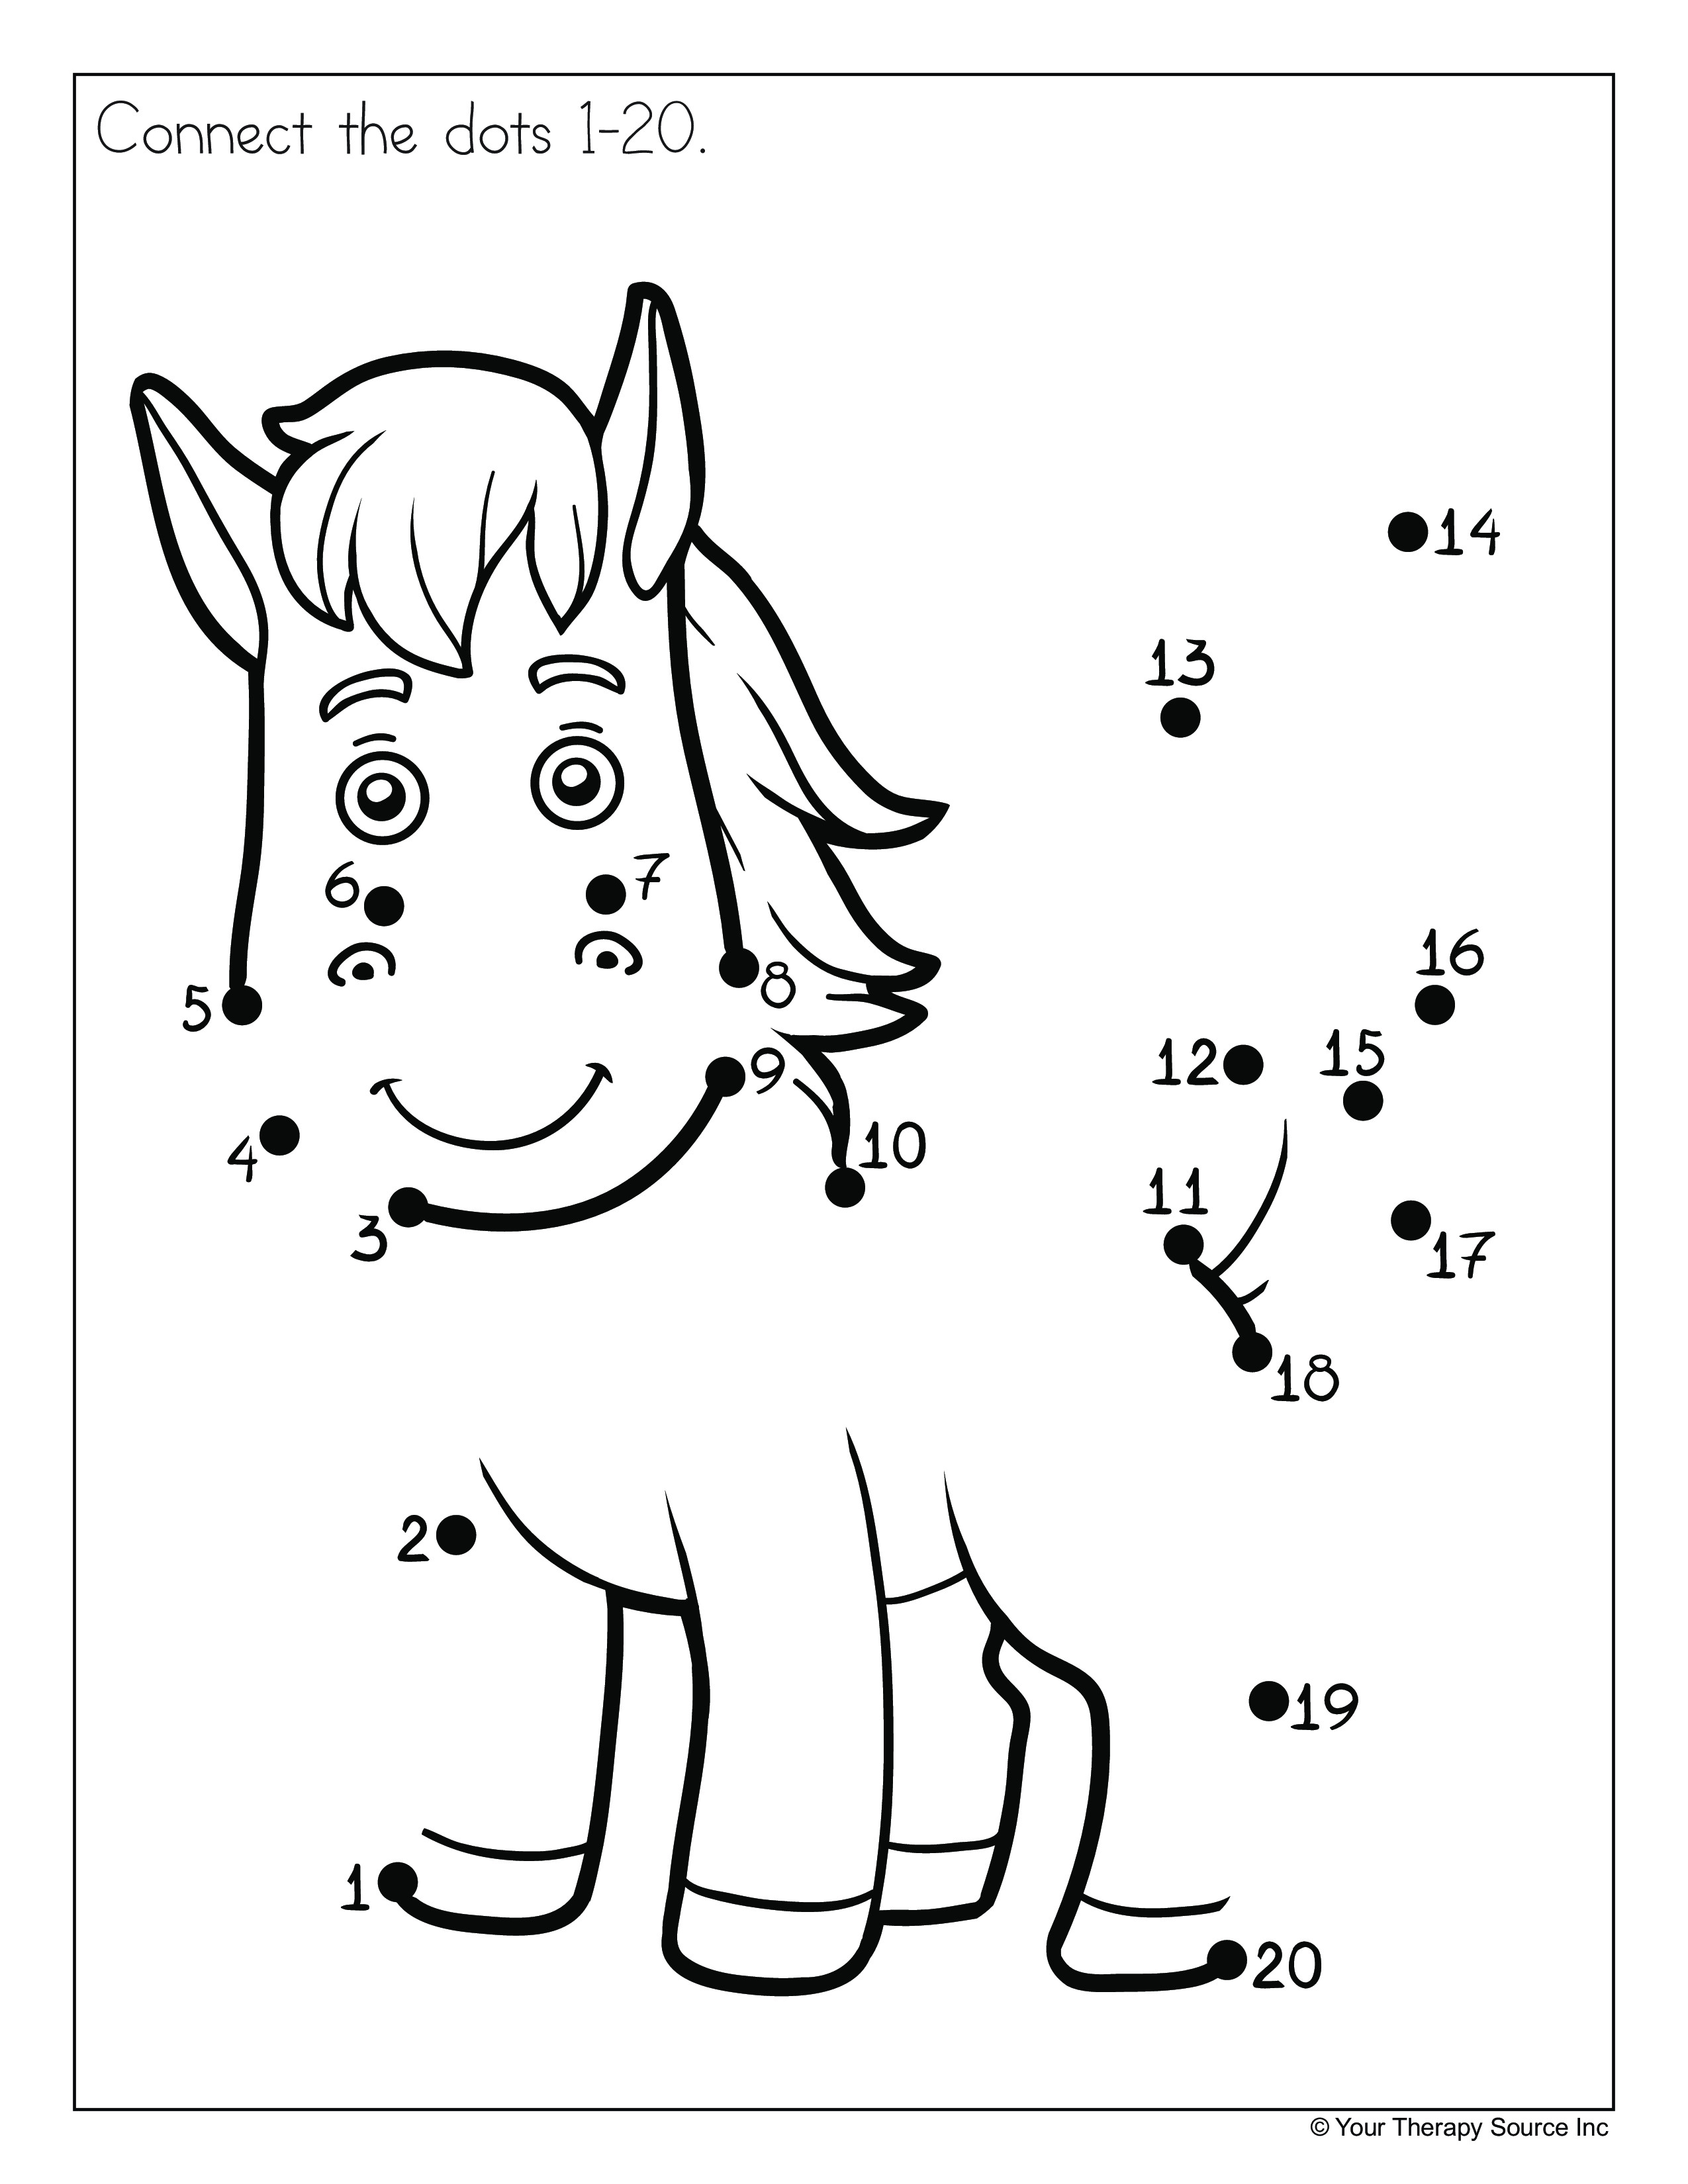 Exceptional image intended for free printable dot to dot